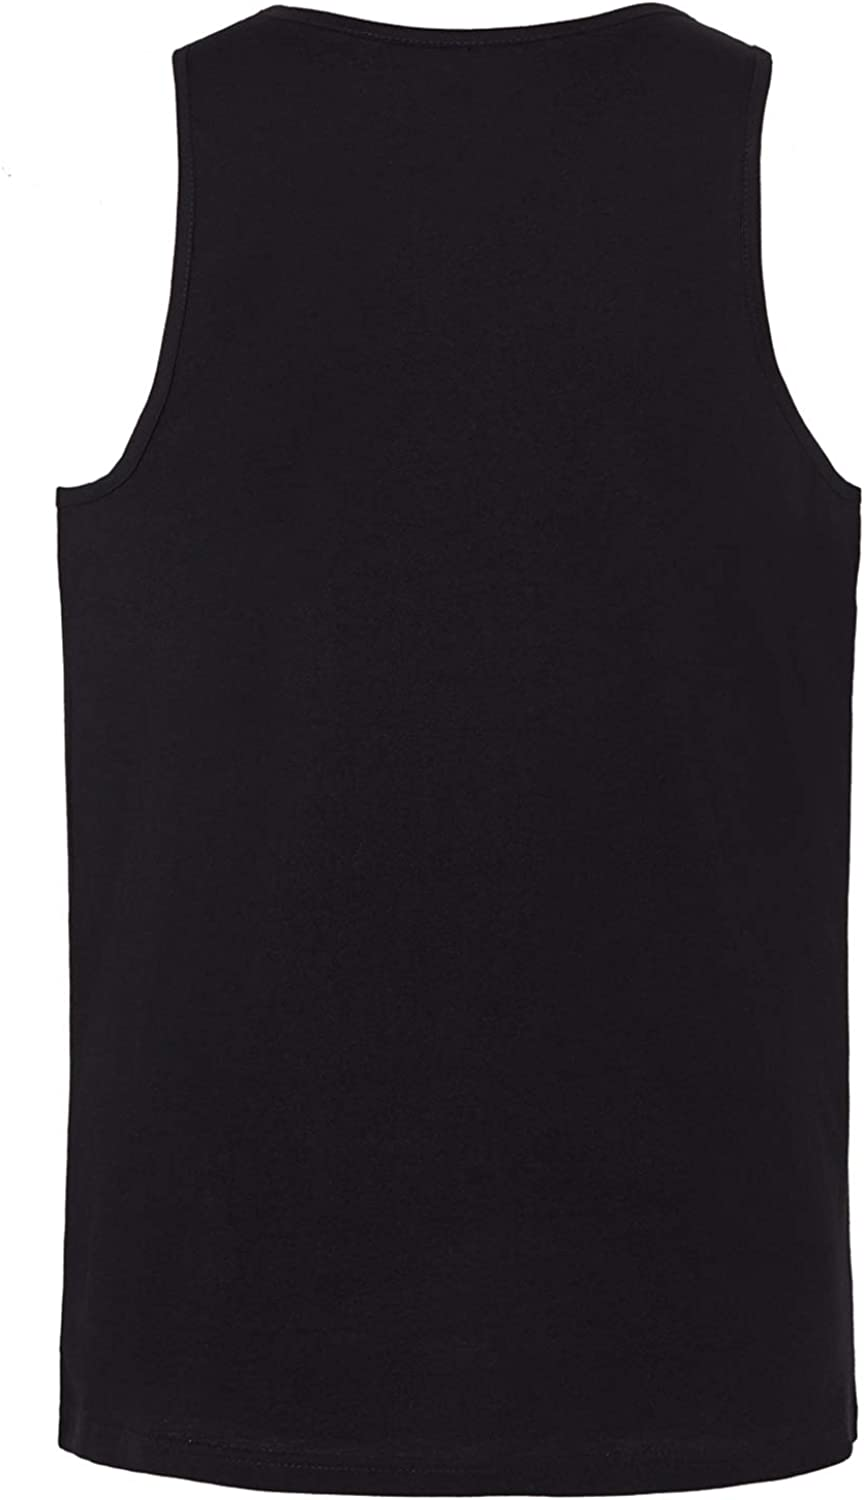 JC DISTRO Mens Slim Fit Basic Solid Tank Top Jersey Casual Shirts